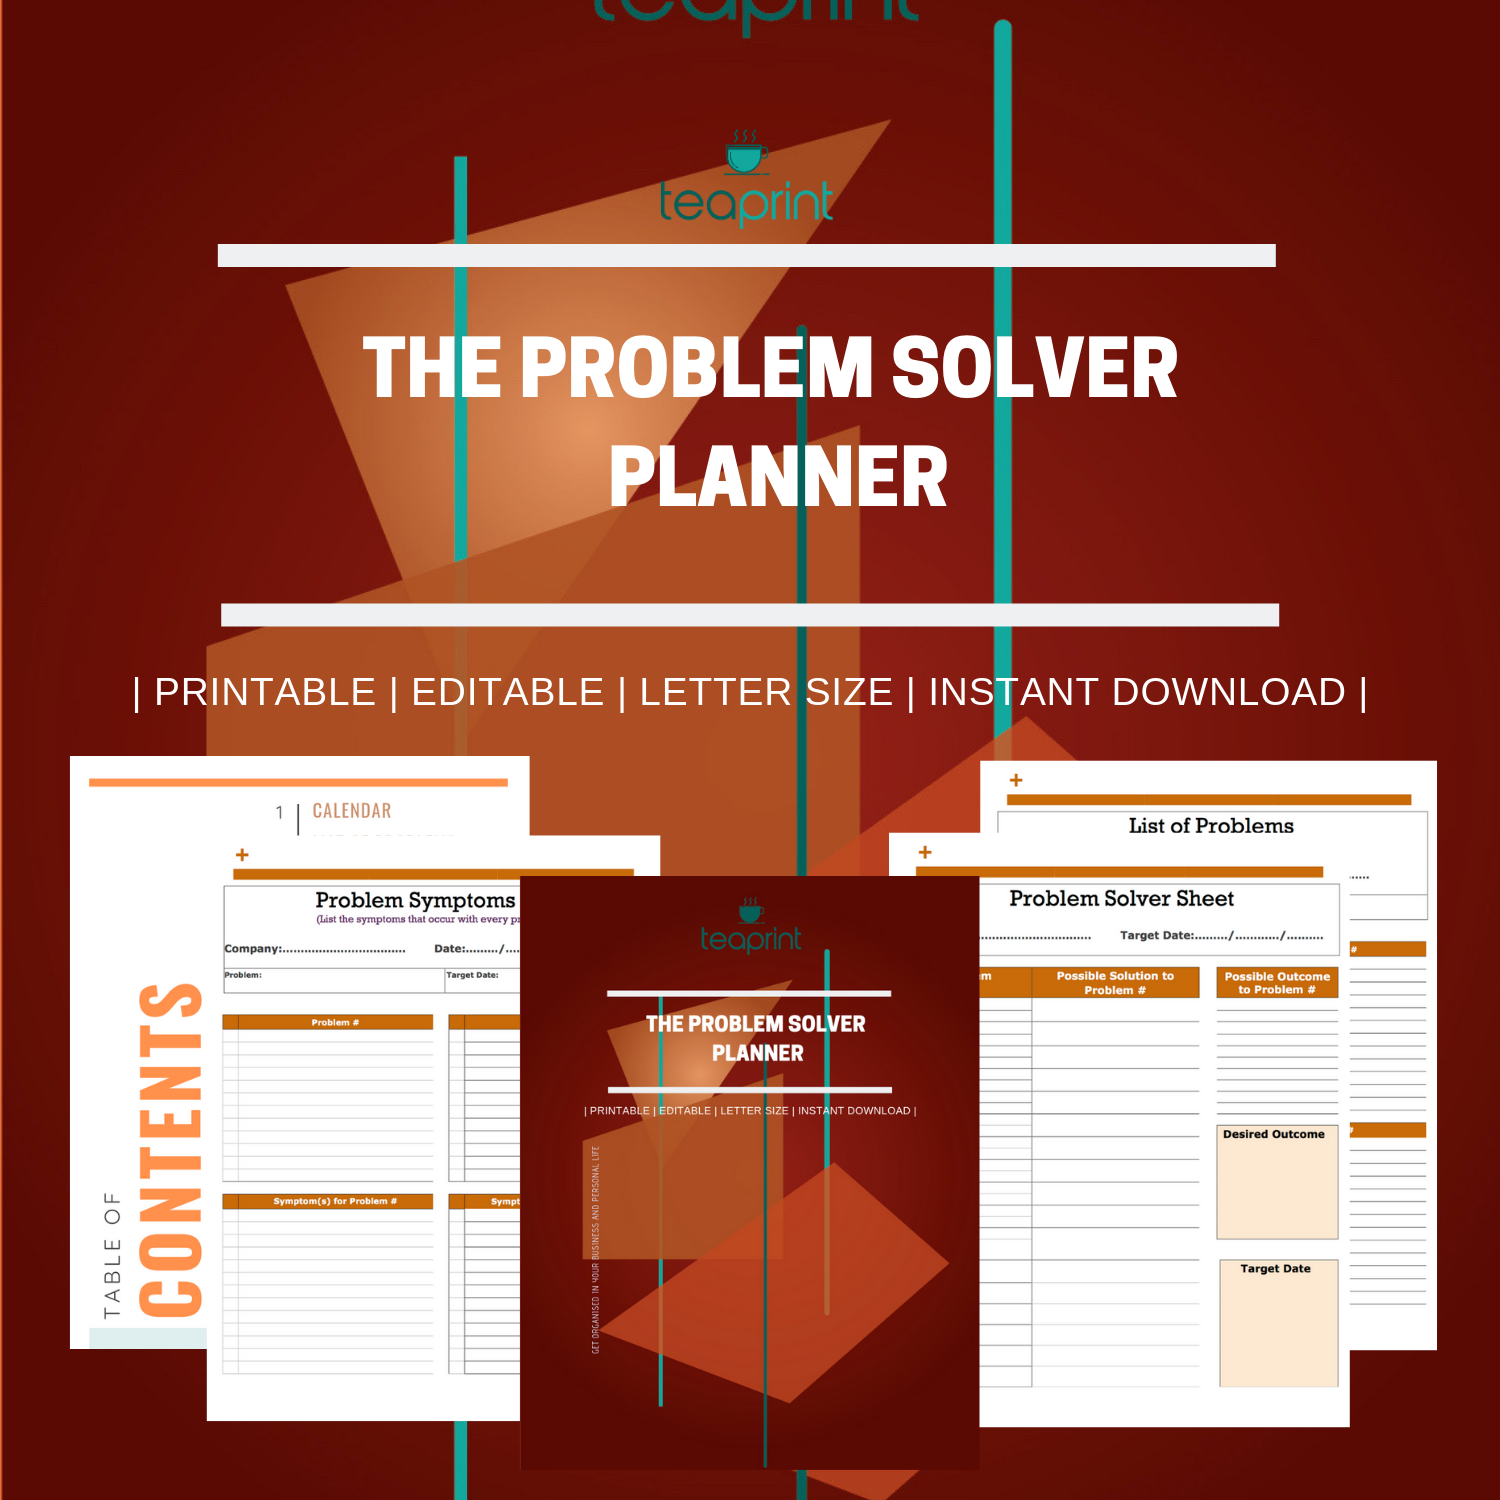 Solve your problems, use this method, check me at gafra.org